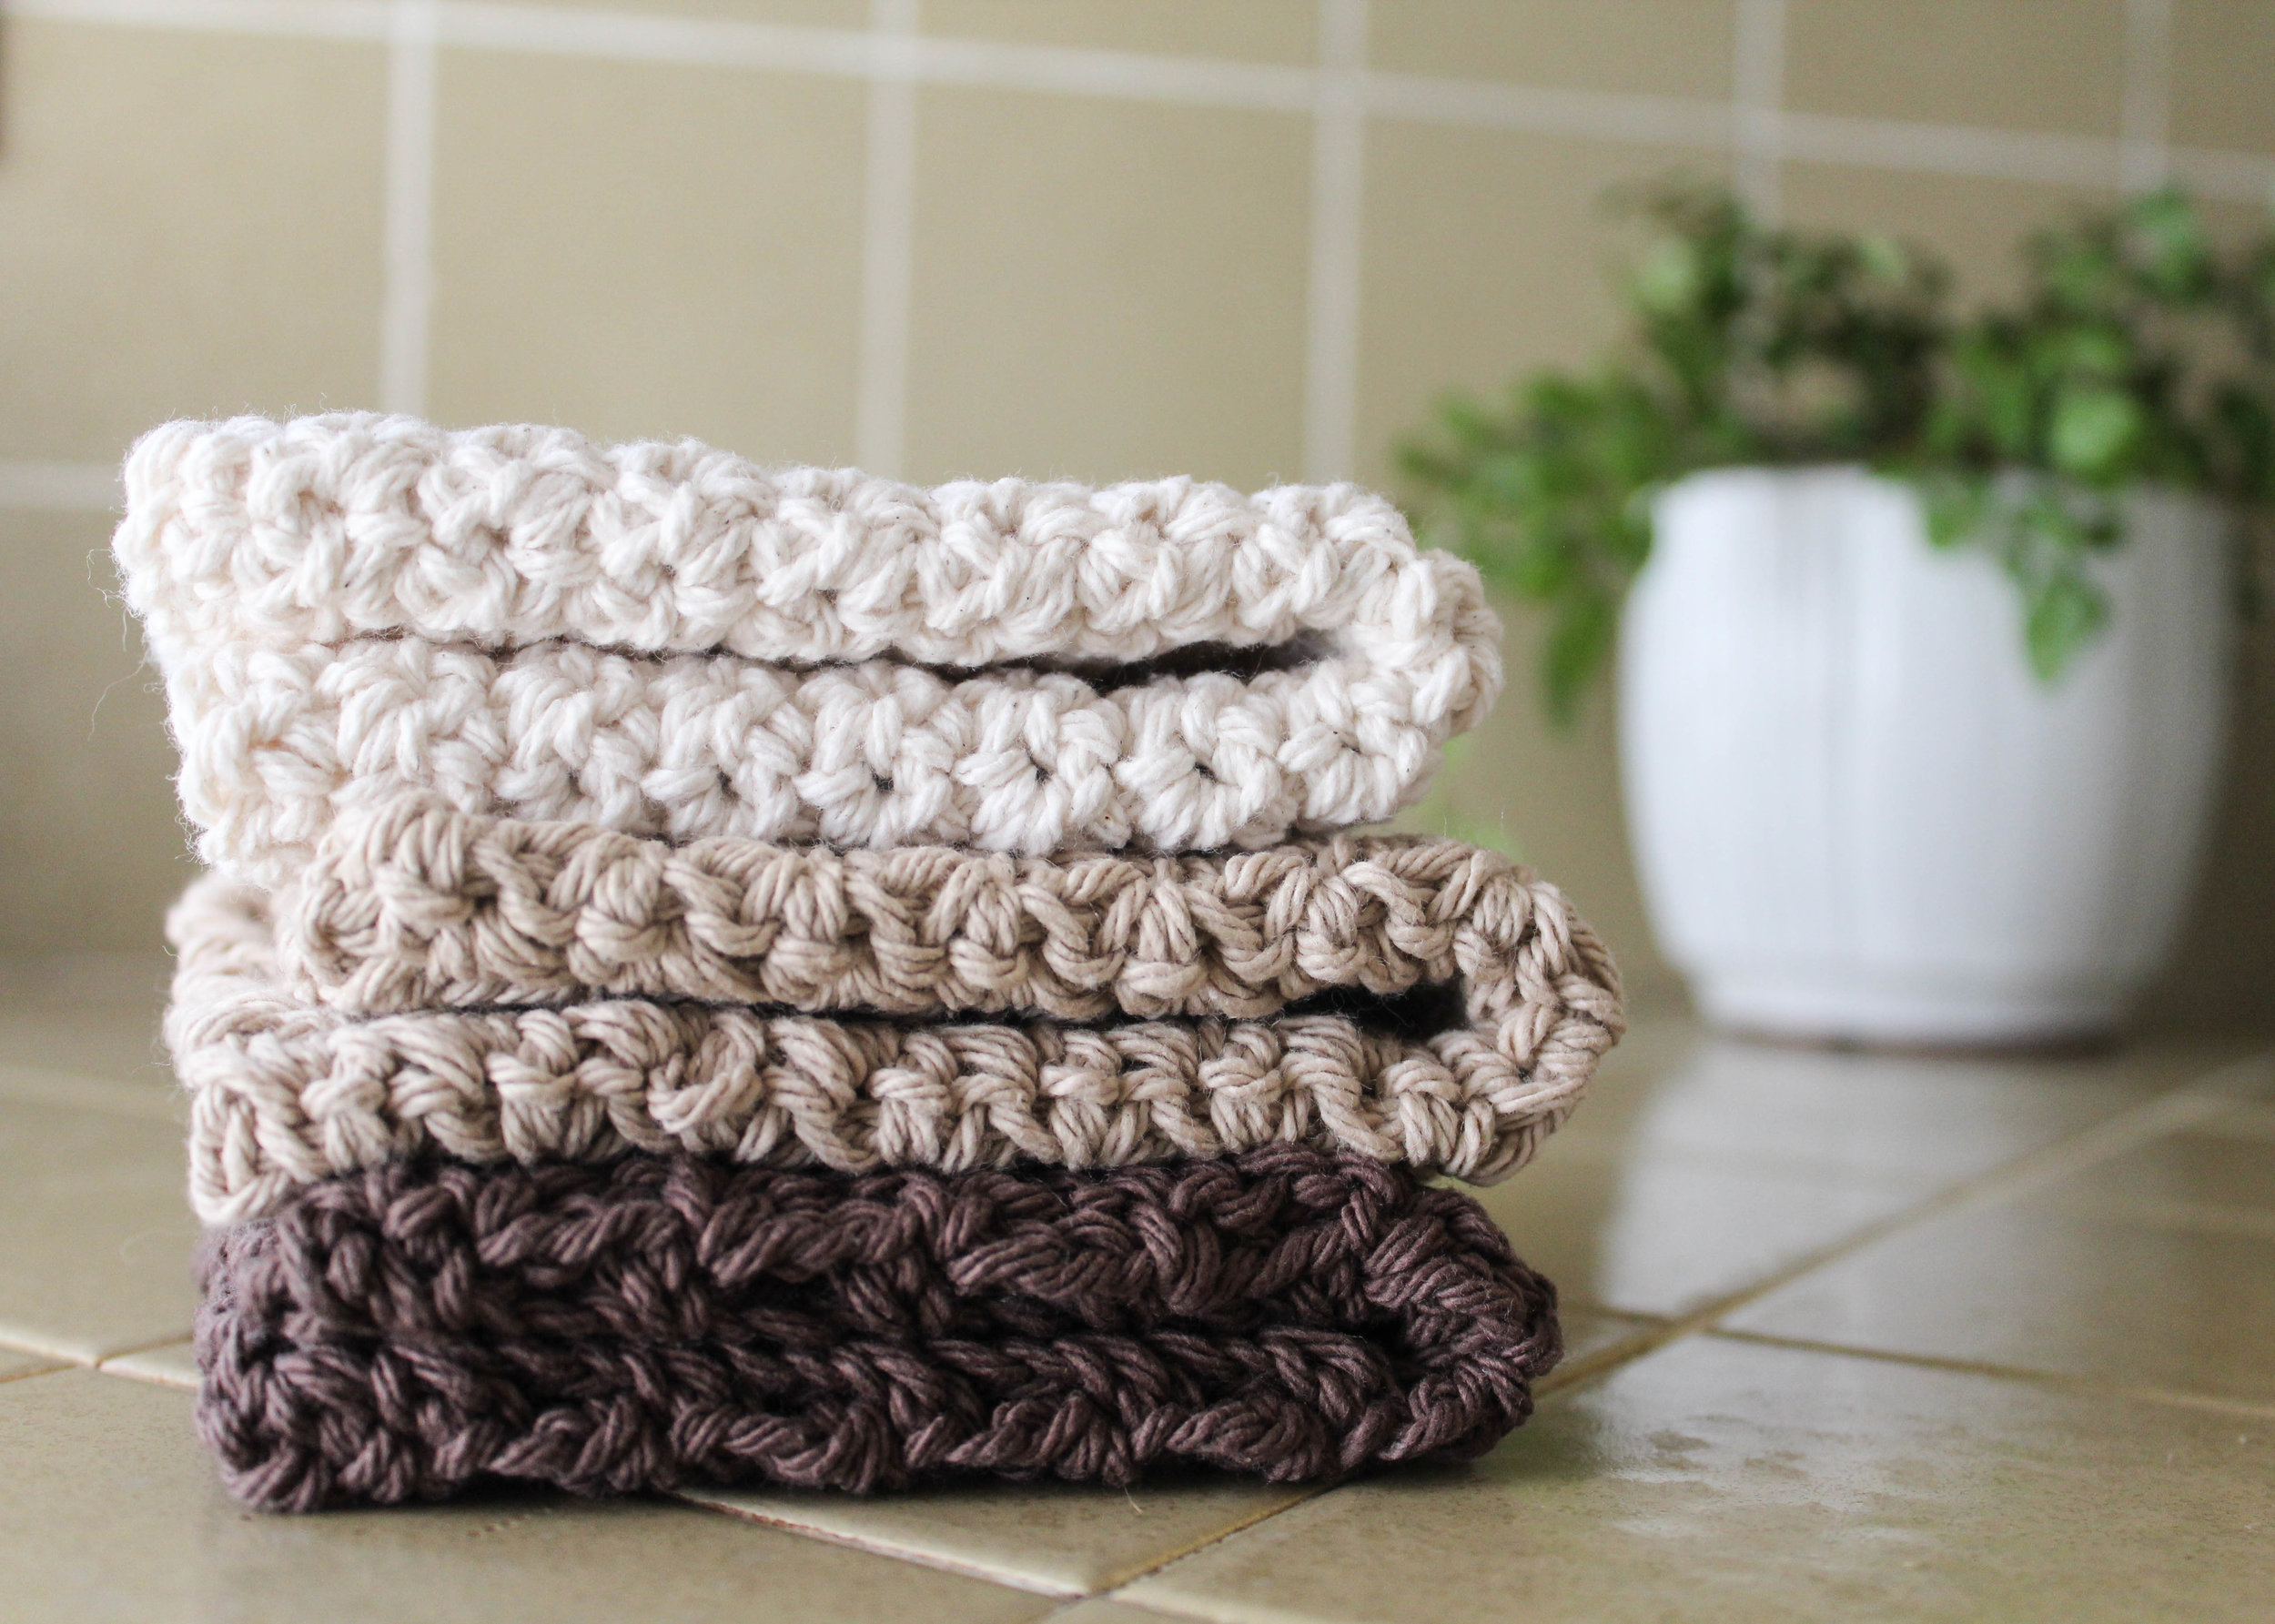 Easy Crochet Dishcloth Pattern Free from bluecorduroy.com